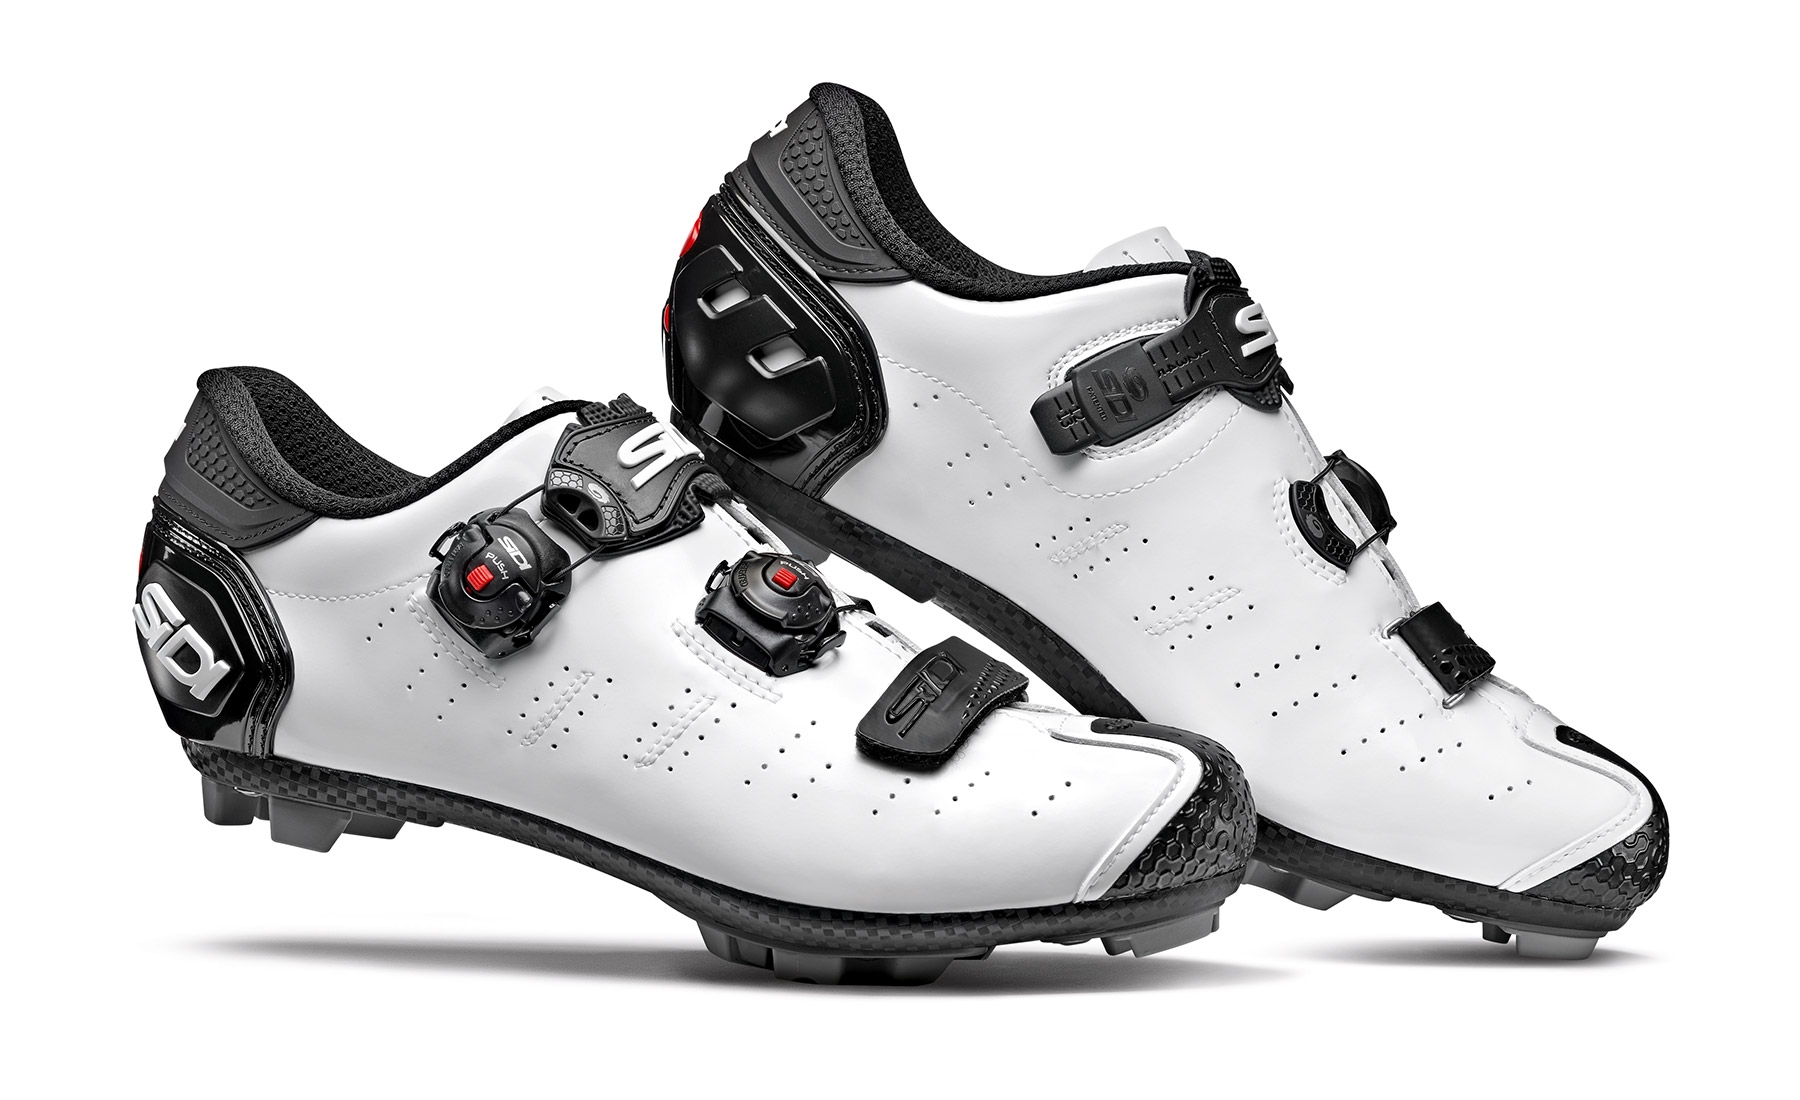 Sidi Dragon 5 SRS MTB Shoes | Shoes and overlays